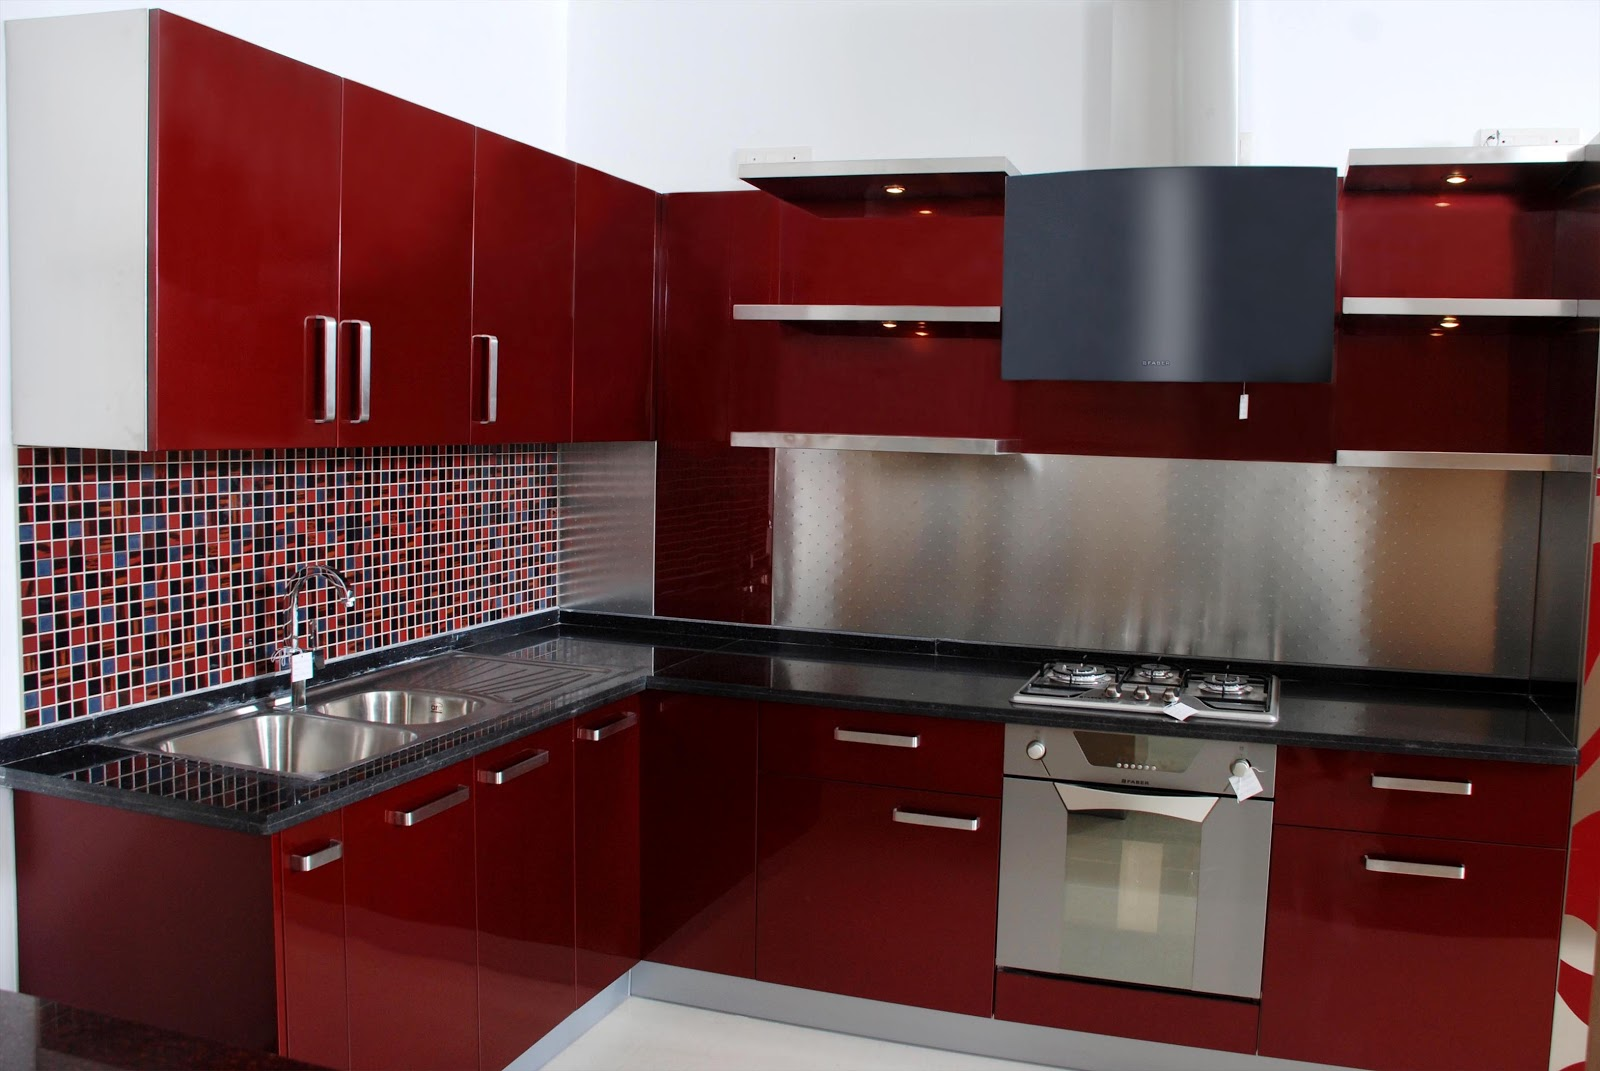 Kitchen Cabinets With Price In India Stainless Steel Modular Kitchen